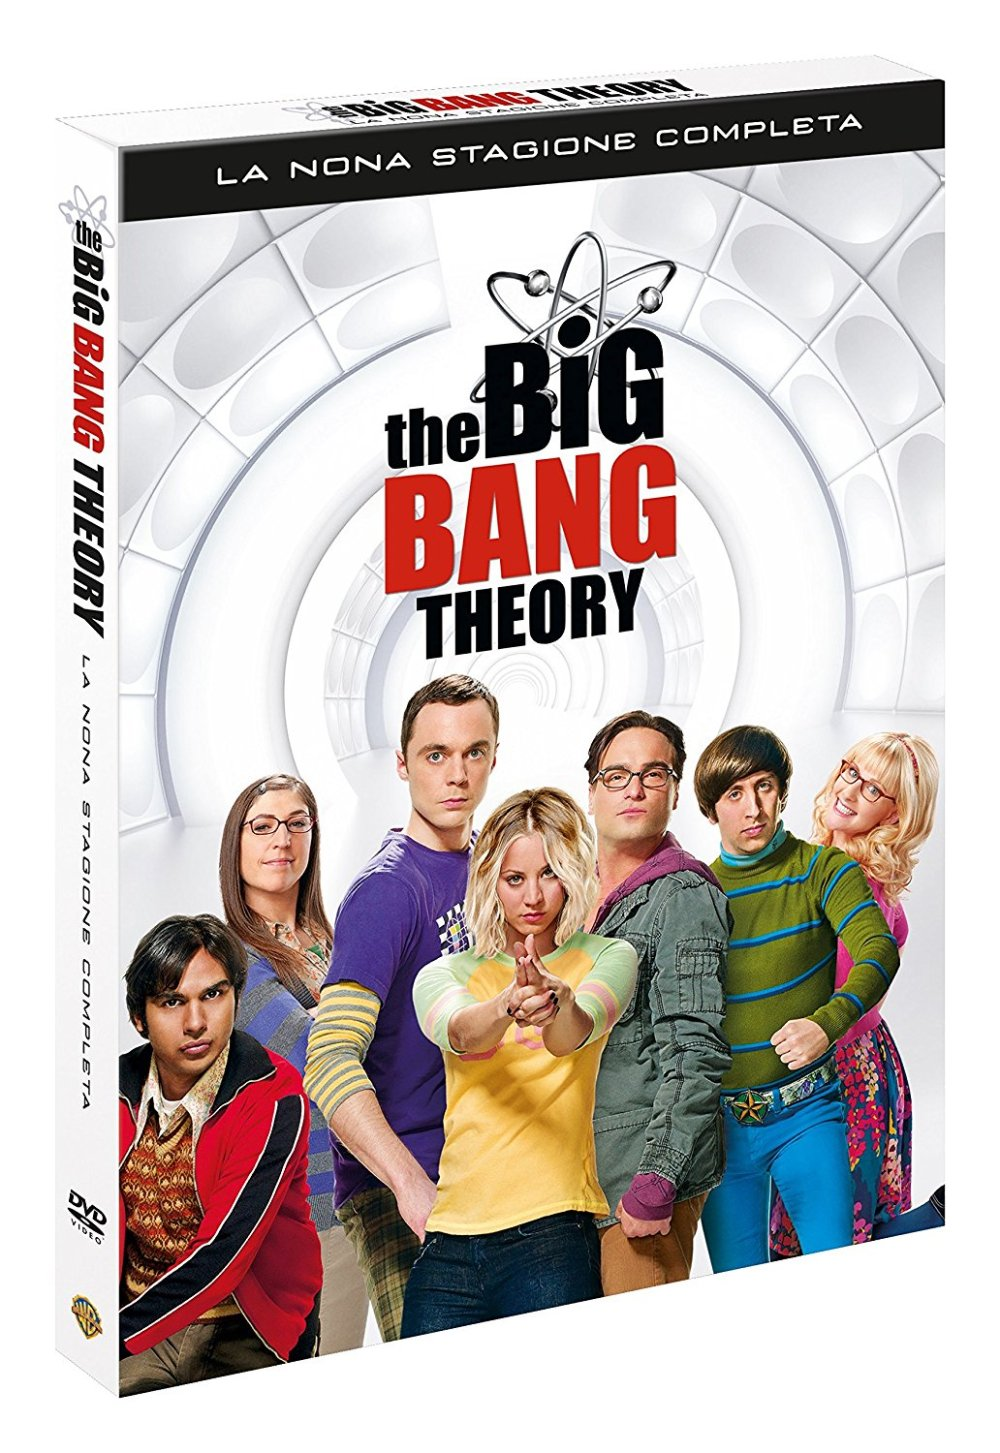 big bang theory dvd complete season amazon0_